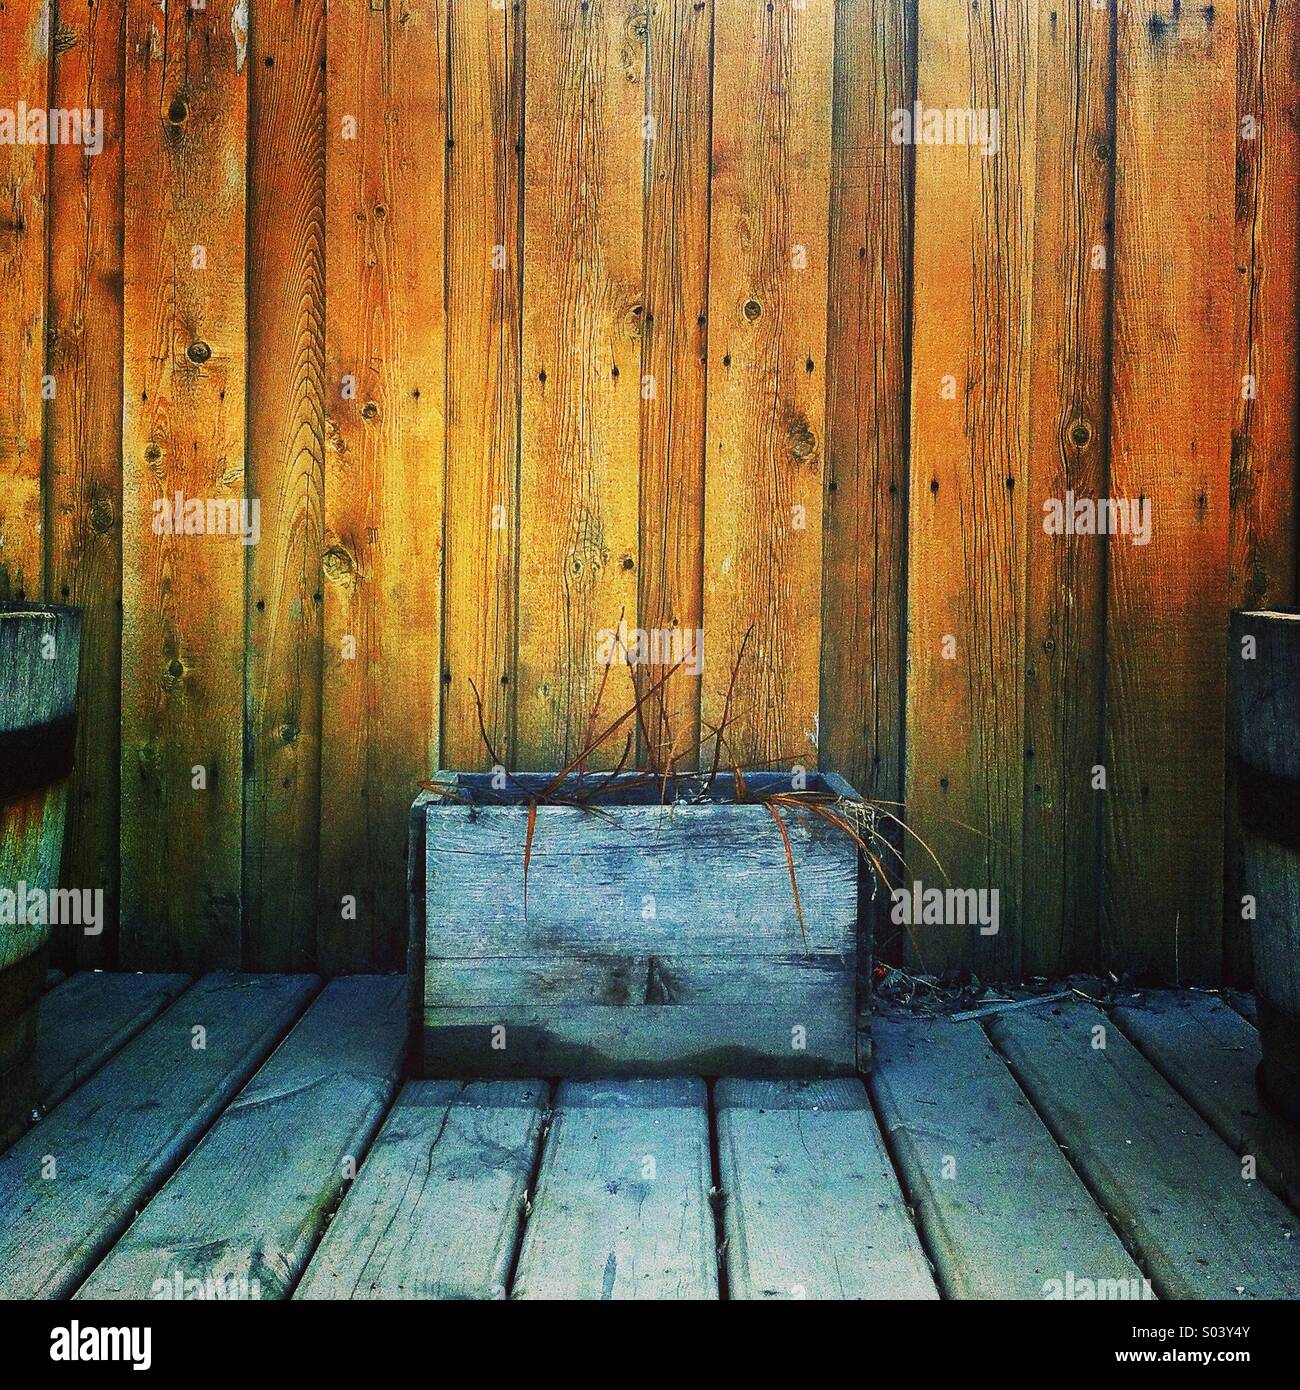 Wooden planter in front of fence - Stock Image